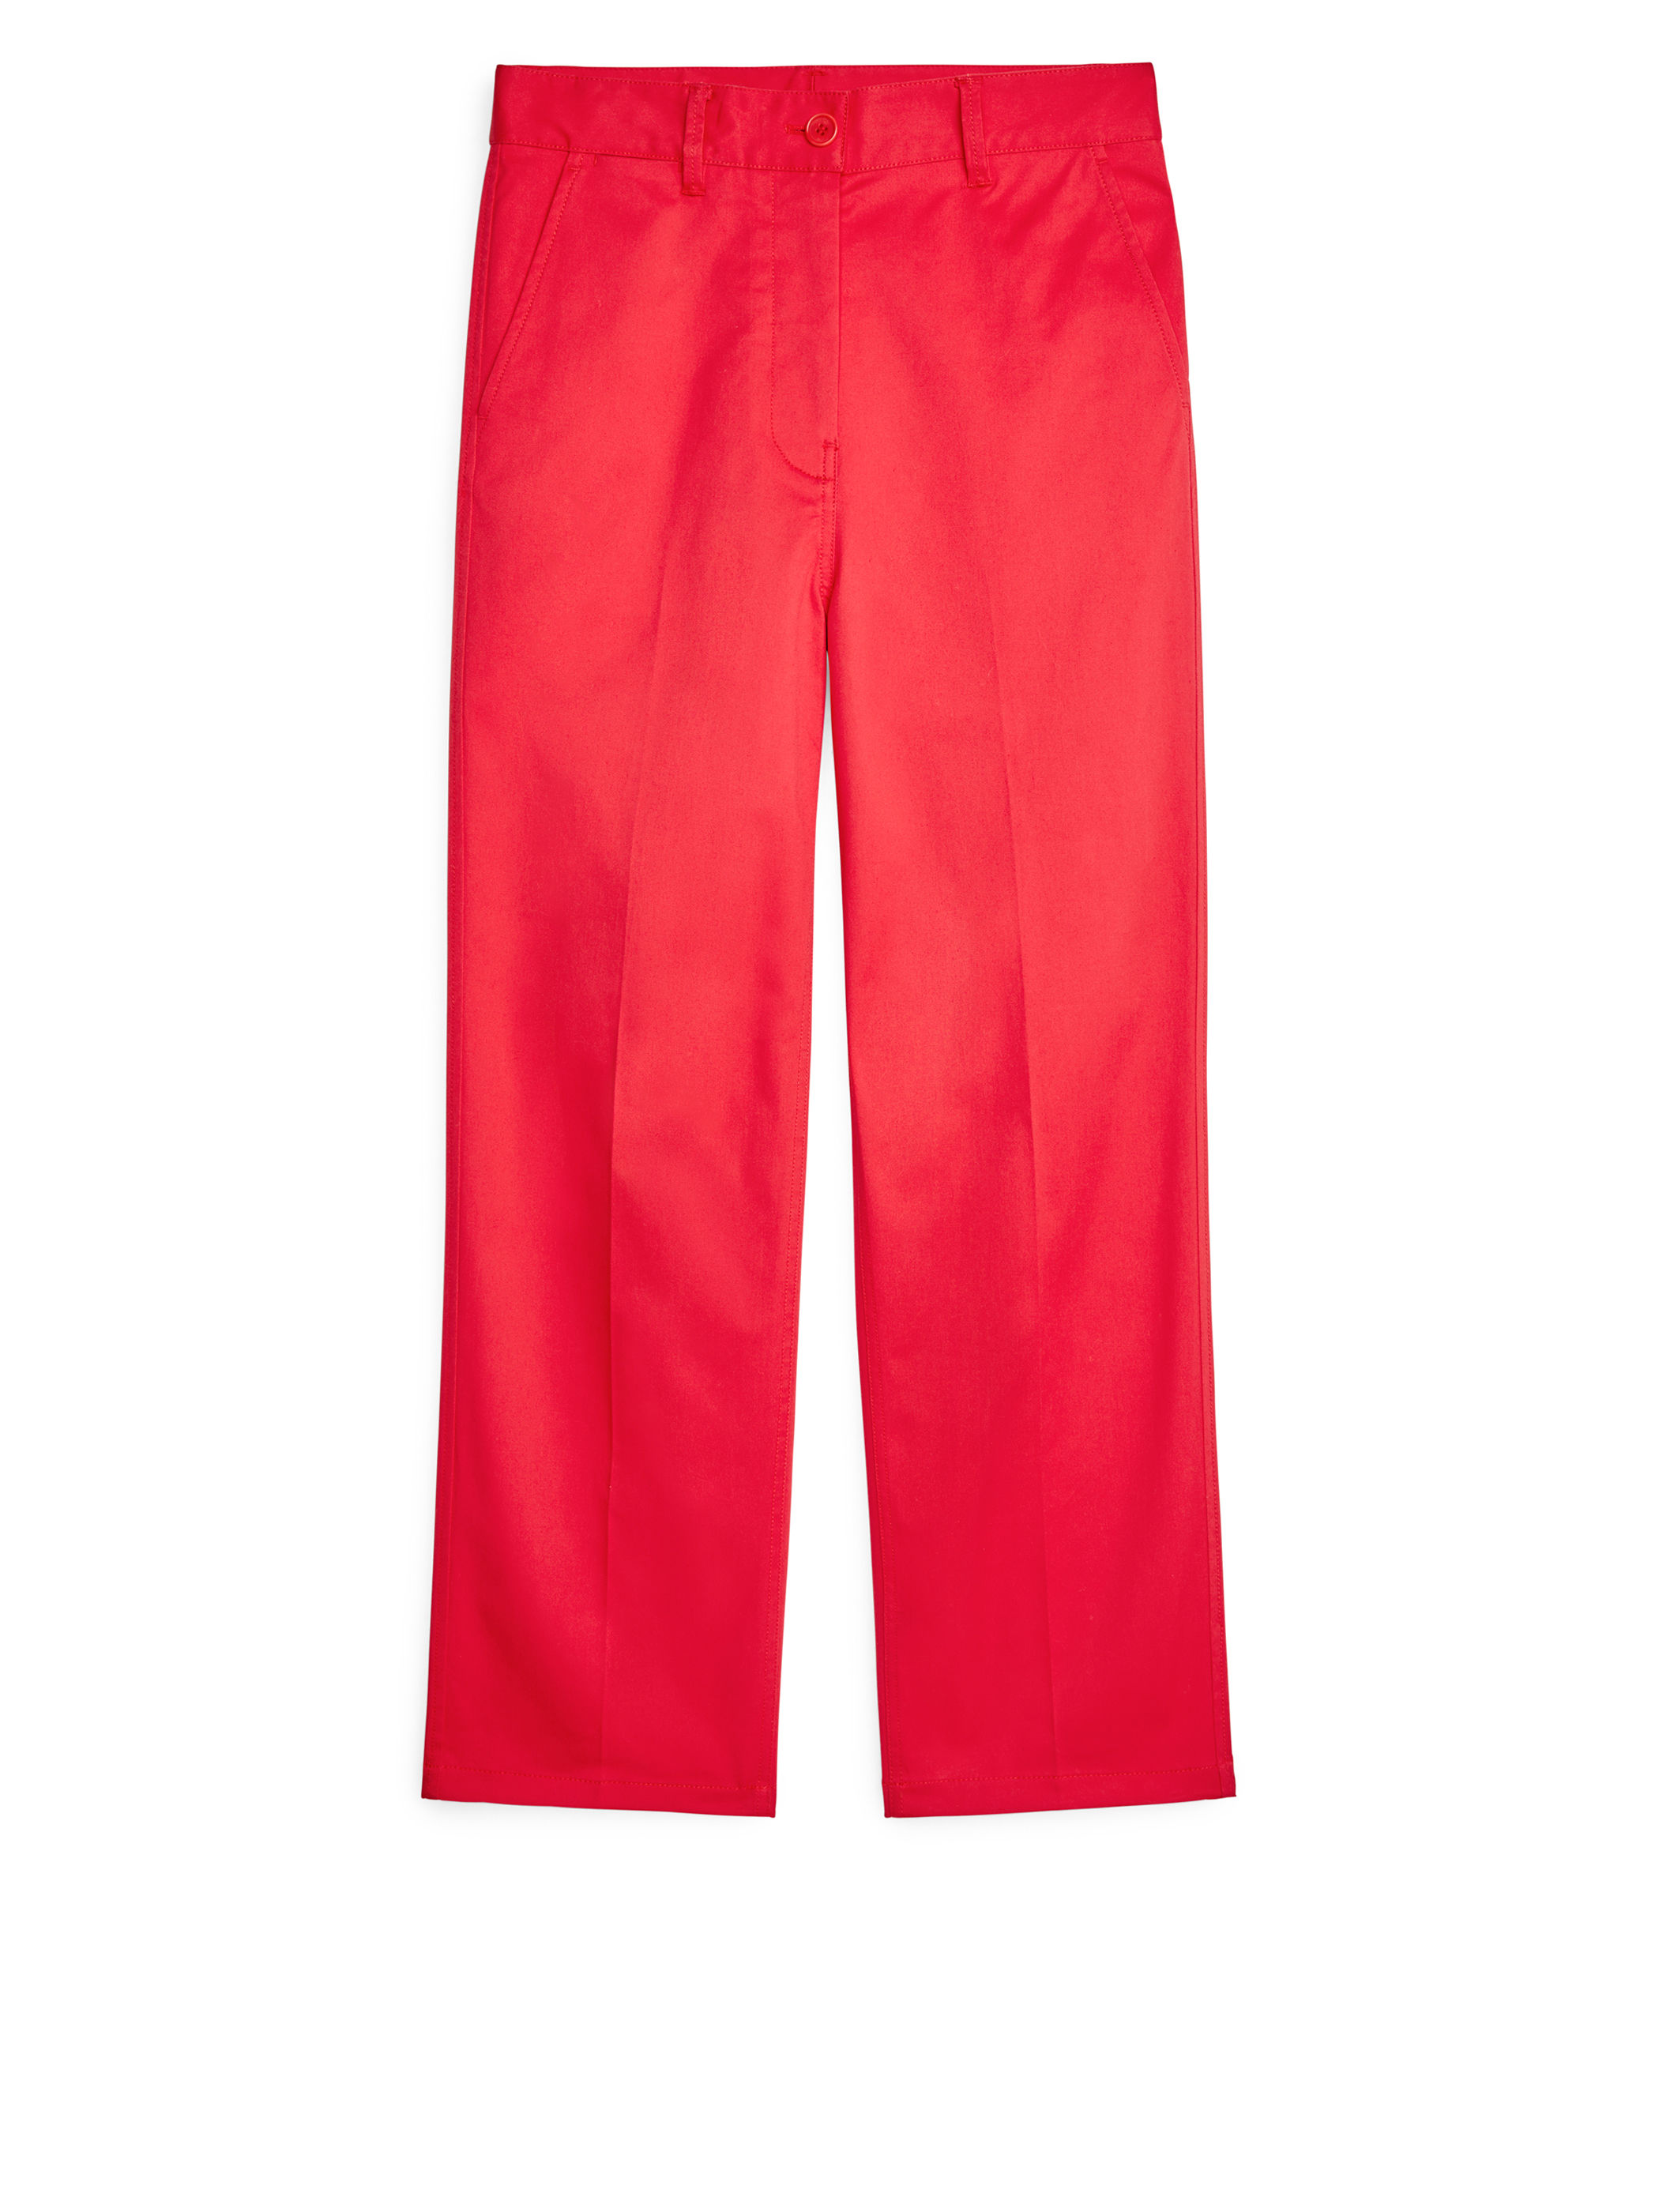 Fabric Swatch image of Arket wide-leg twill trousers in red